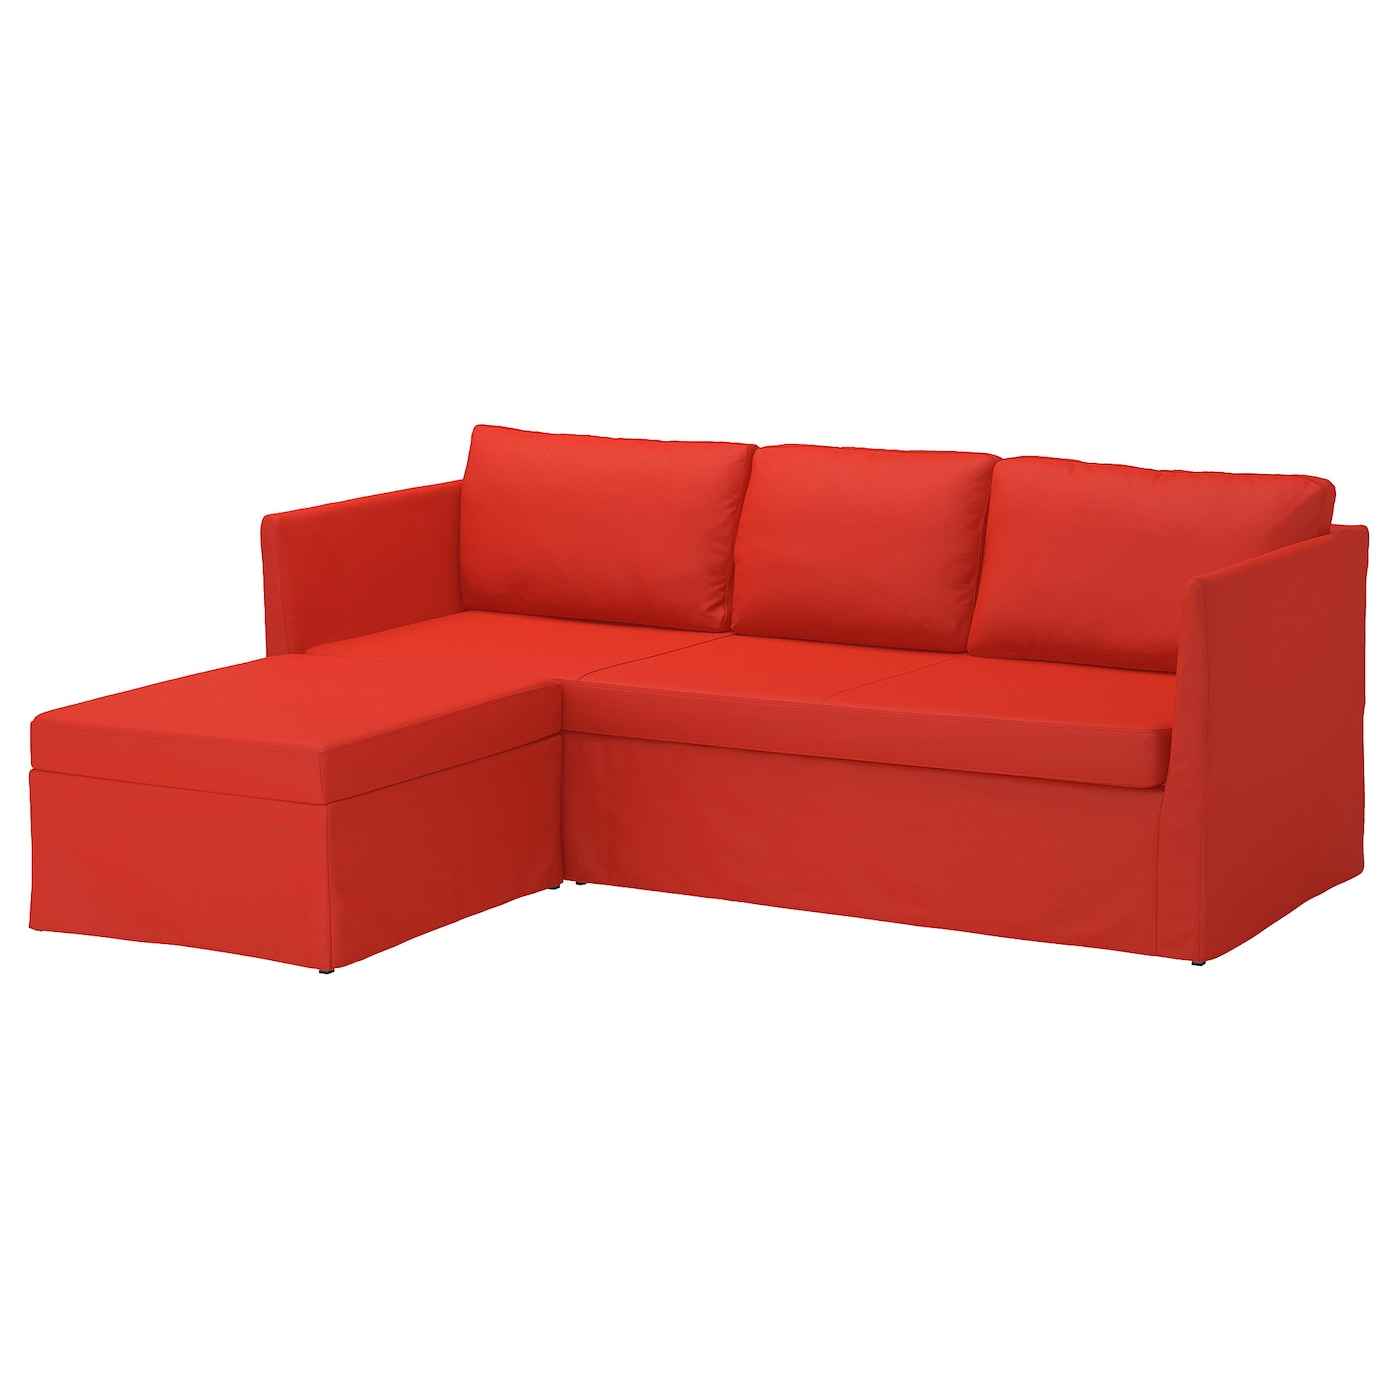 Brathult Sleeper Sectional 3 Seat Vissle Red Orange Ikea